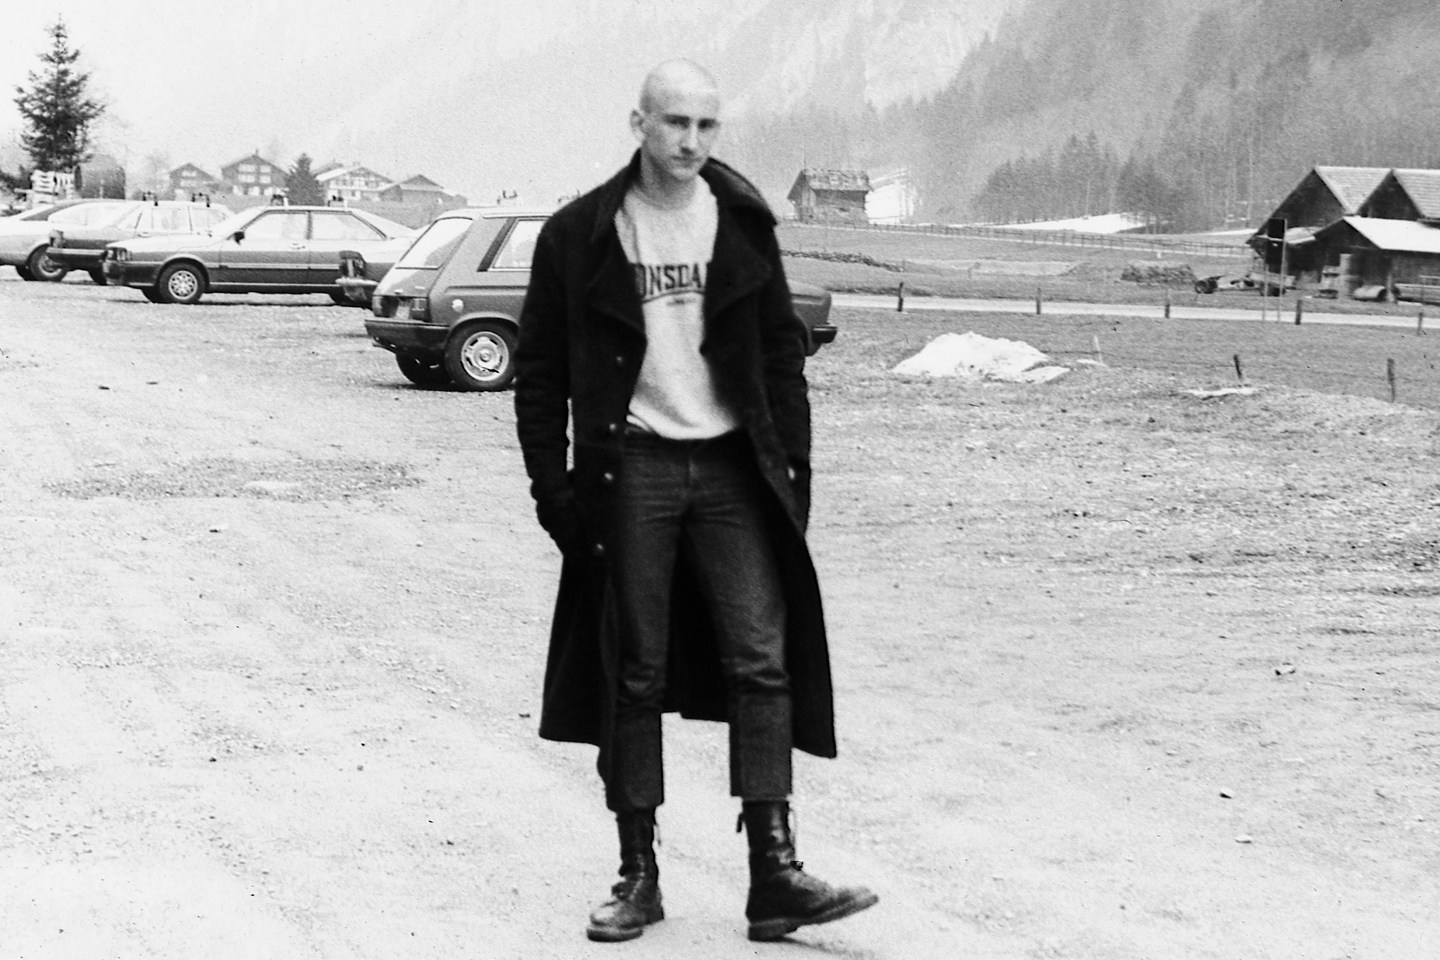 http://thefader-res.cloudinary.com/images/w_1440,c_limit,f_auto,q_auto:best/q000eulmi2tjkipm5ibp/gavin-watson-dr-martens-skinhead-style.jpg